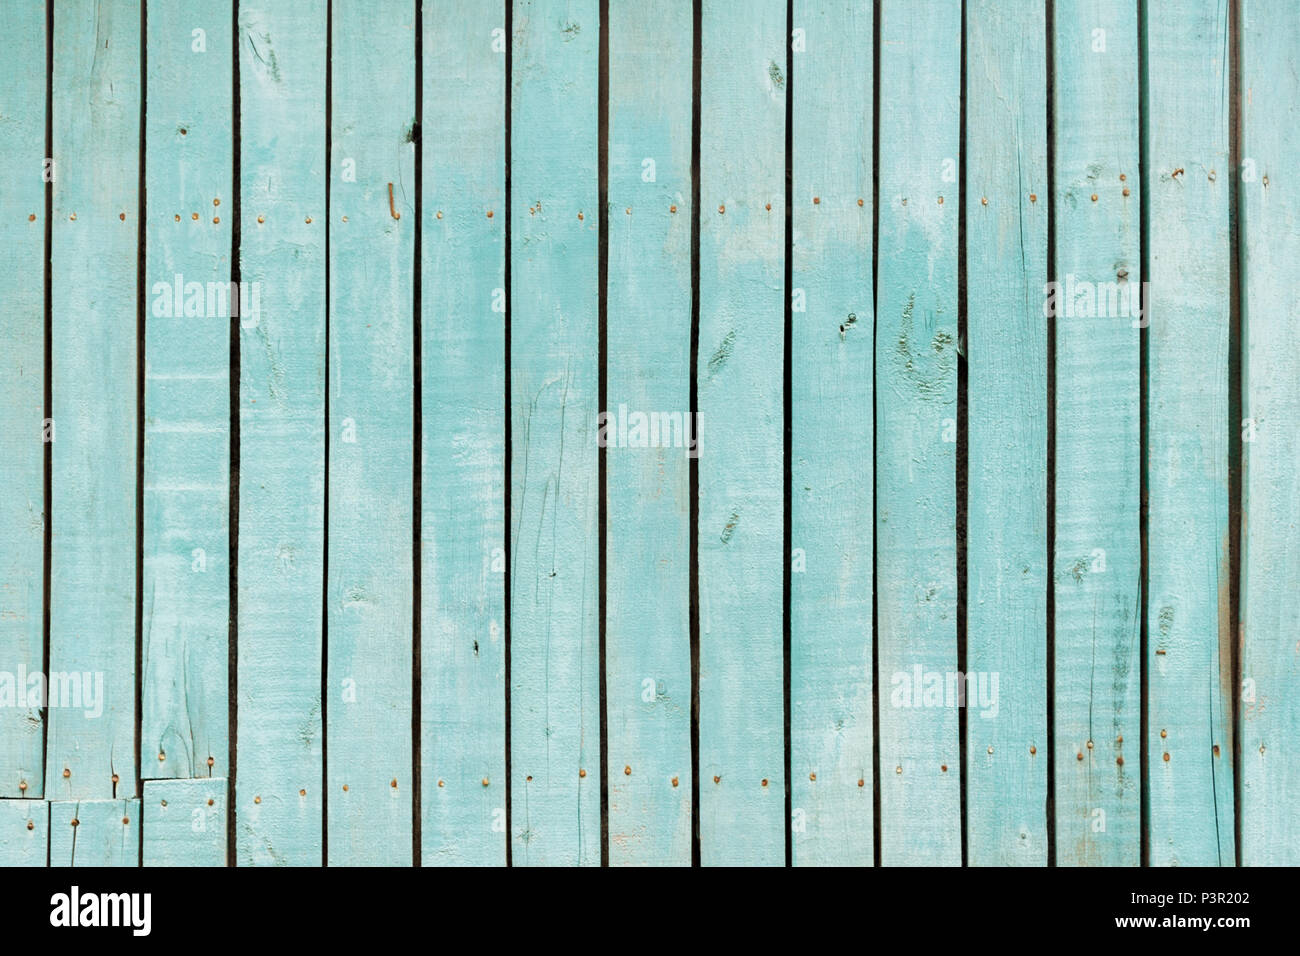 blue old wooden fence. wood palisade texture. planks background. - Stock Image